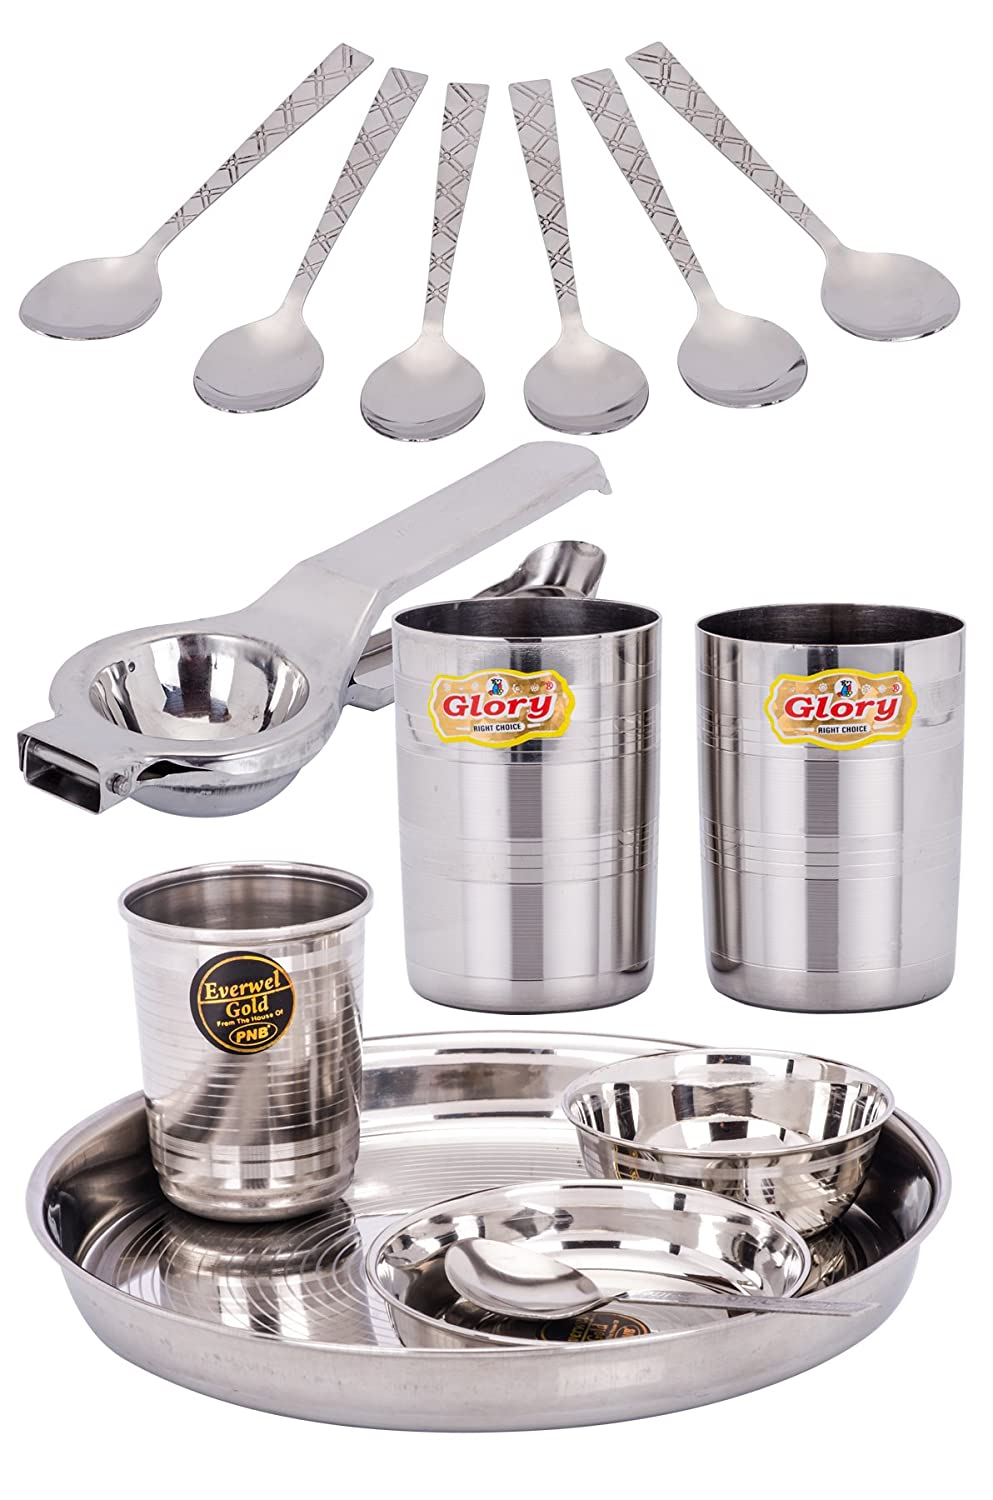 Crockery wala and company everwel 4 pcs kitchen set combo set of 7 amazon in home improvement